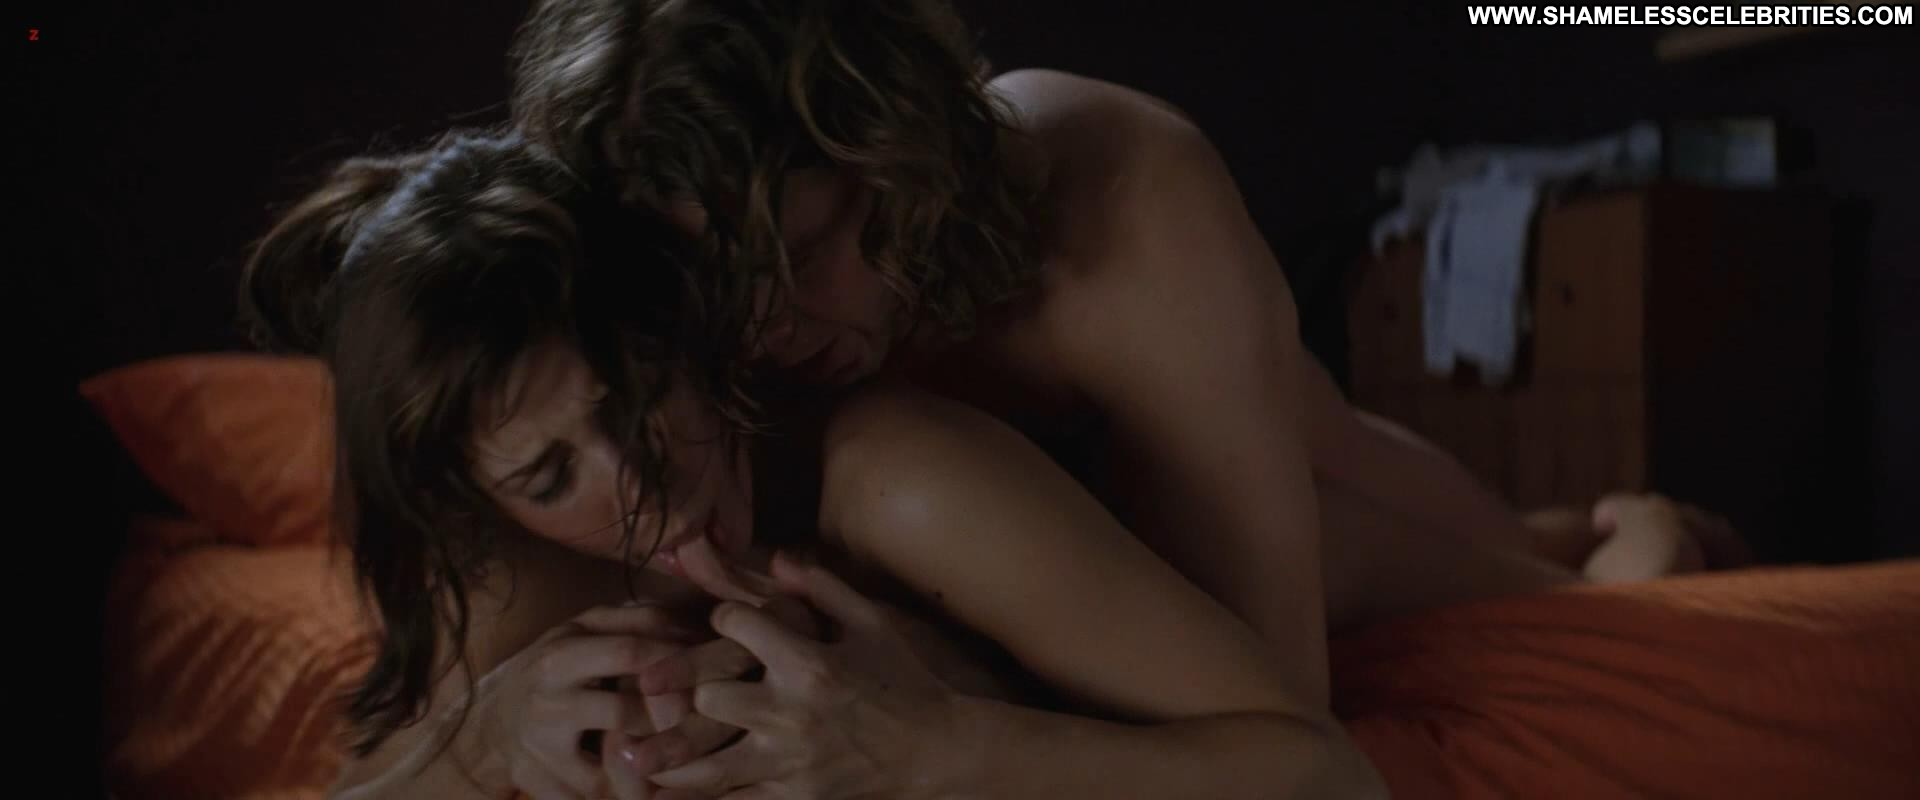 Cindy Sampson Patricia Stasiak Rachel Bilson The Last Kiss Celebrity Posing Hot Lesbian Nude ...